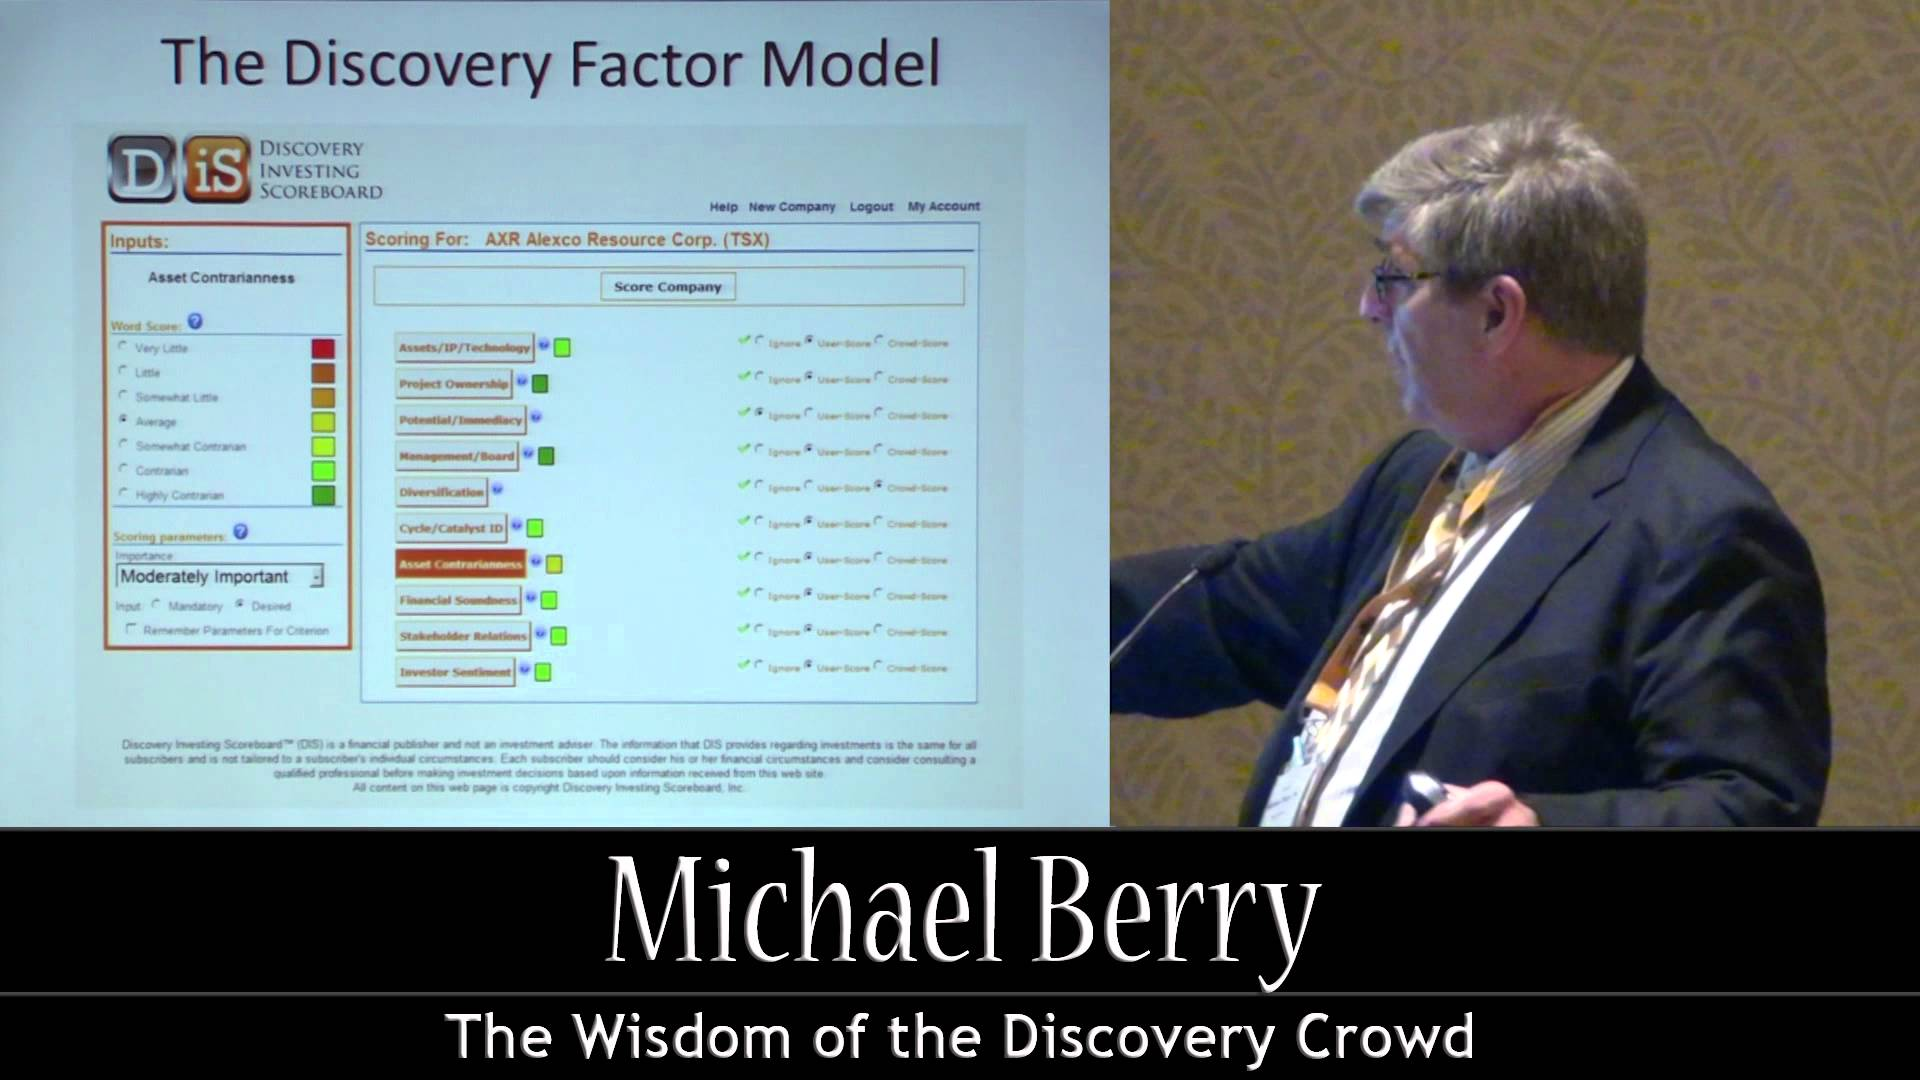 The Wisdom of the Discovery Crowd: Presentation by Michael Berry